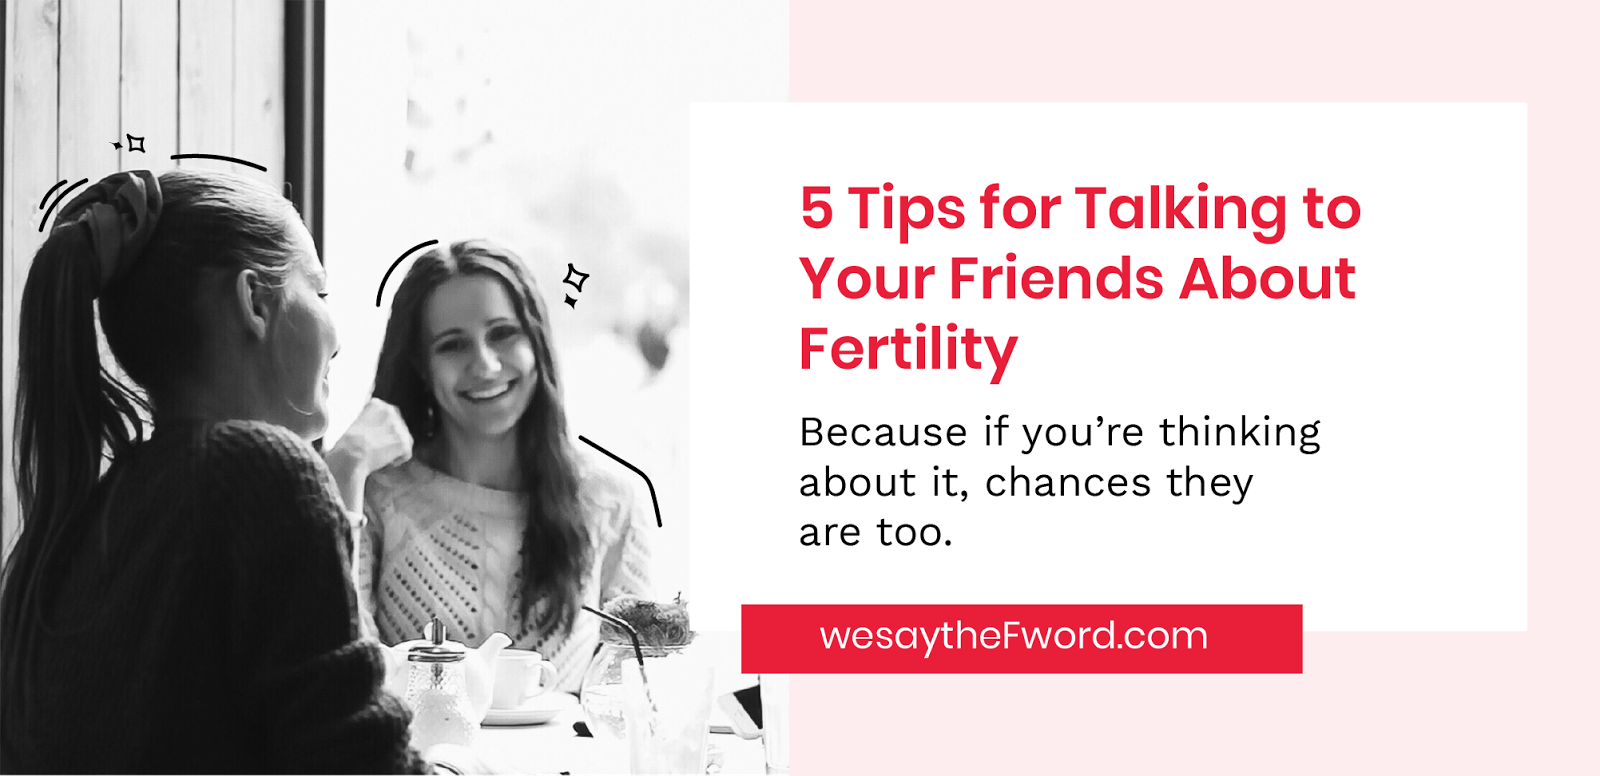 5 Tips for Talking to Your Friends About Fertility - Celmatix